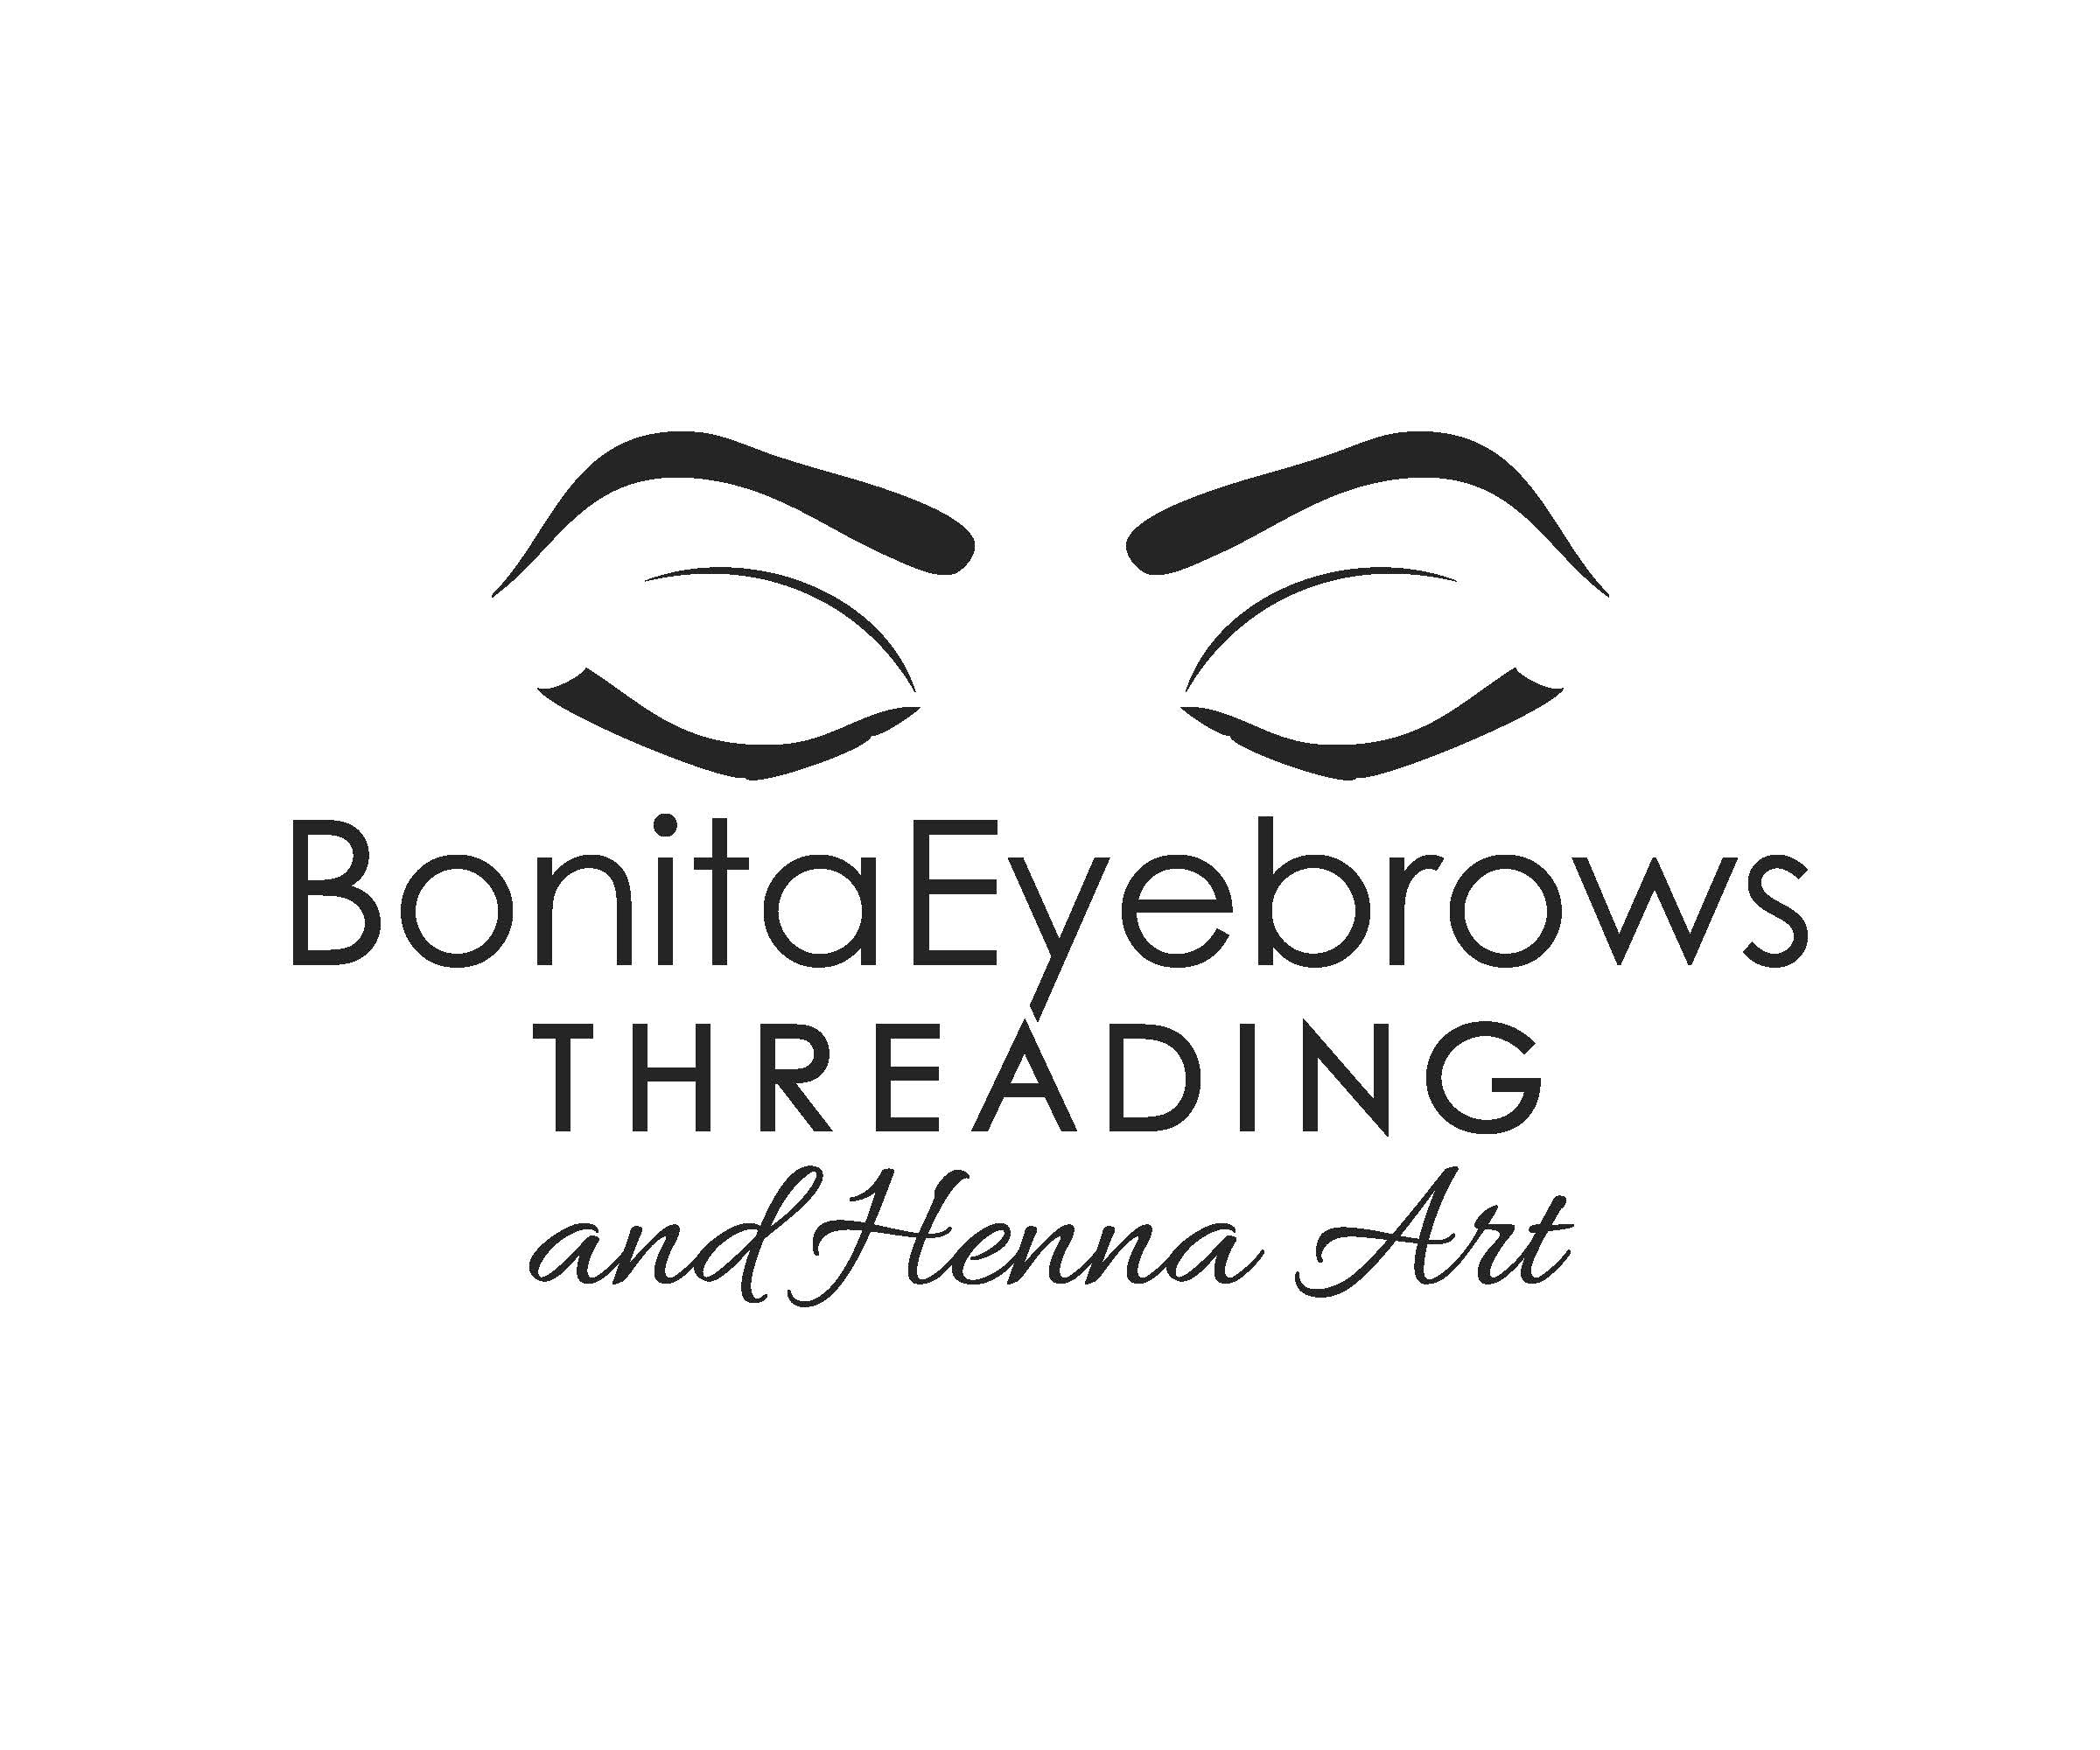 Bonita Eyebrows Threading And Henna Art Logo